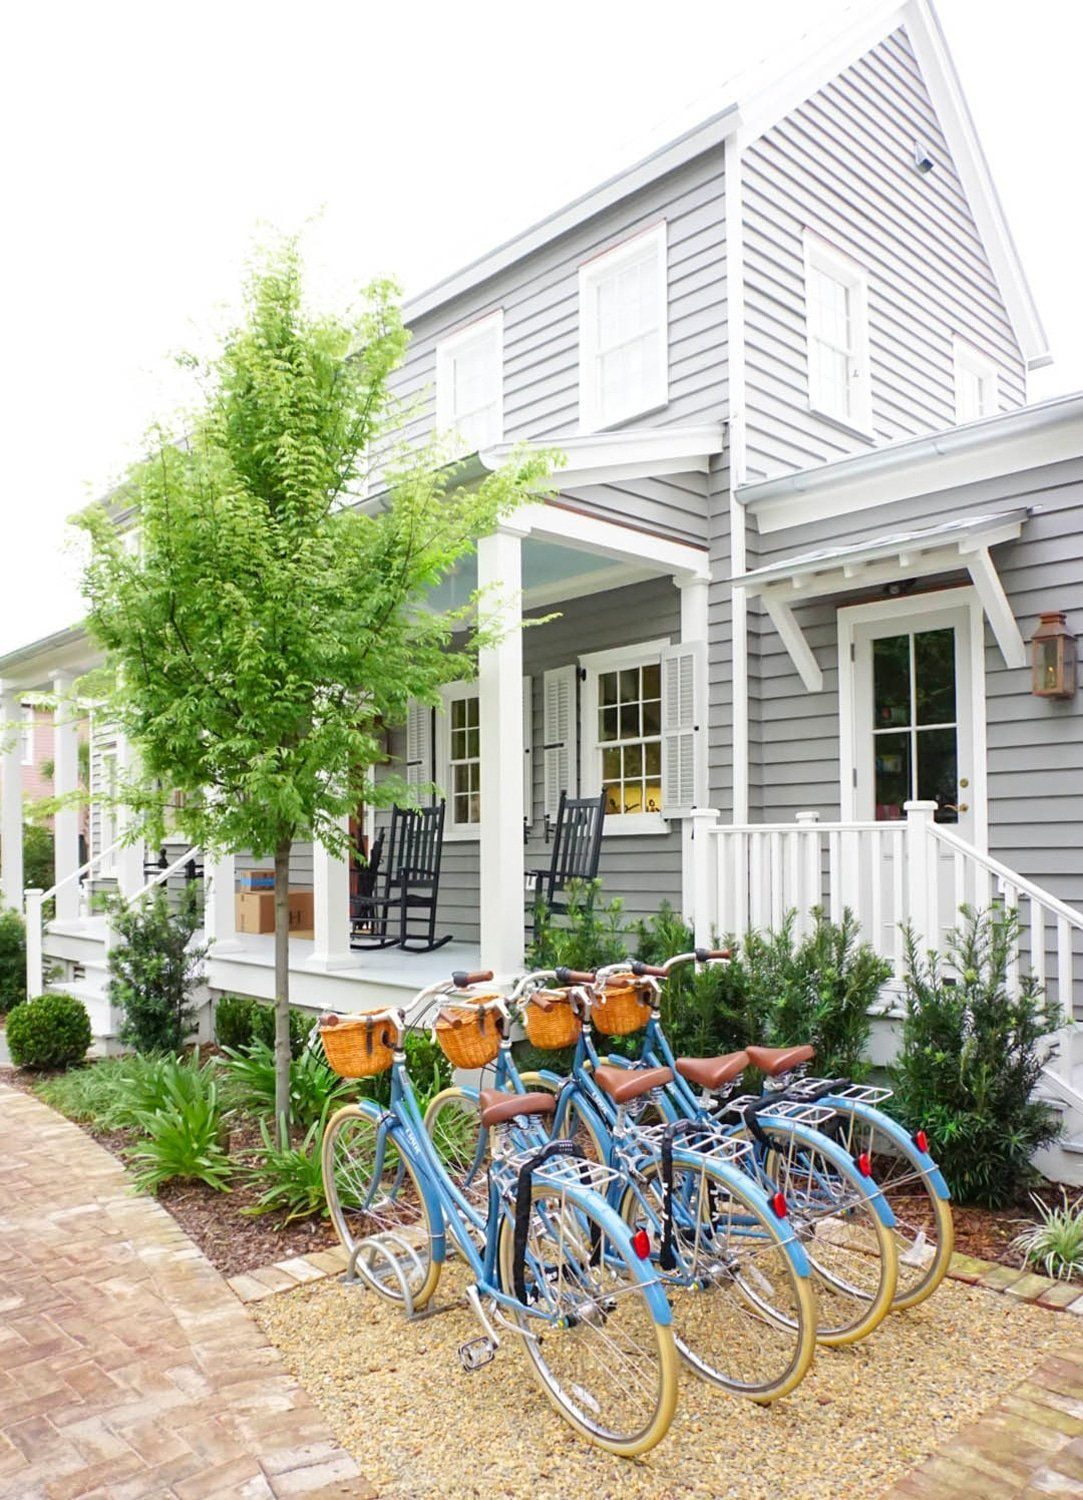 Ashley Brooke Designs gives a tour of 86 Cannon in Charleston